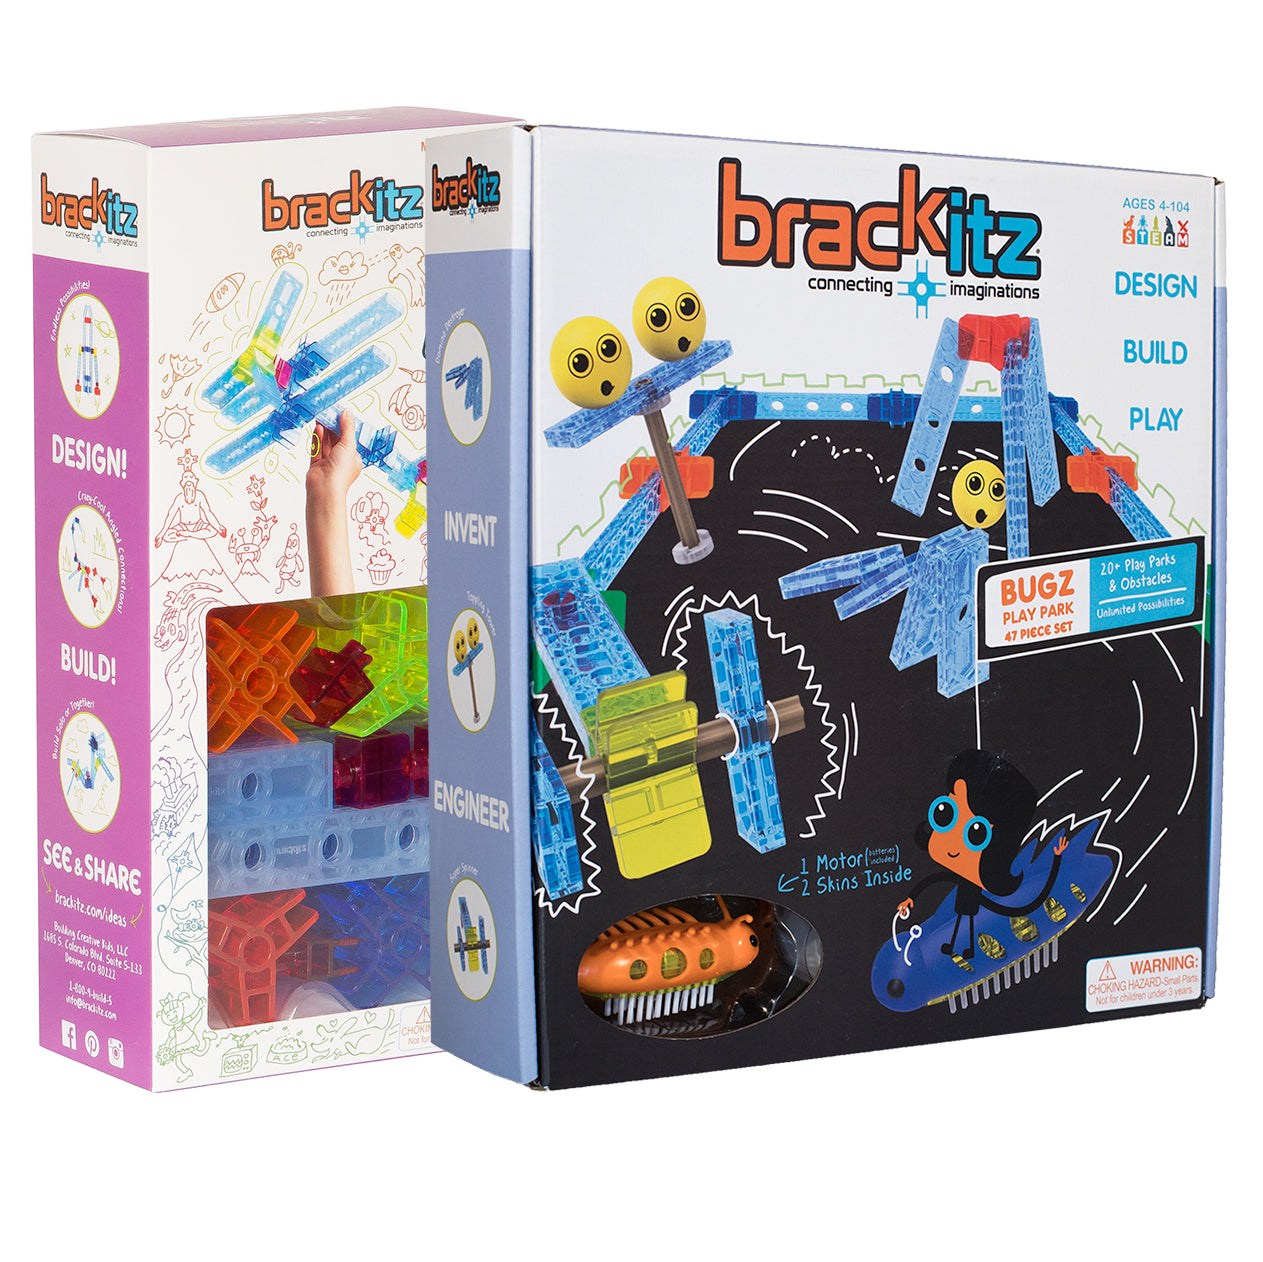 Bugz STEM IQ75-Piece Set